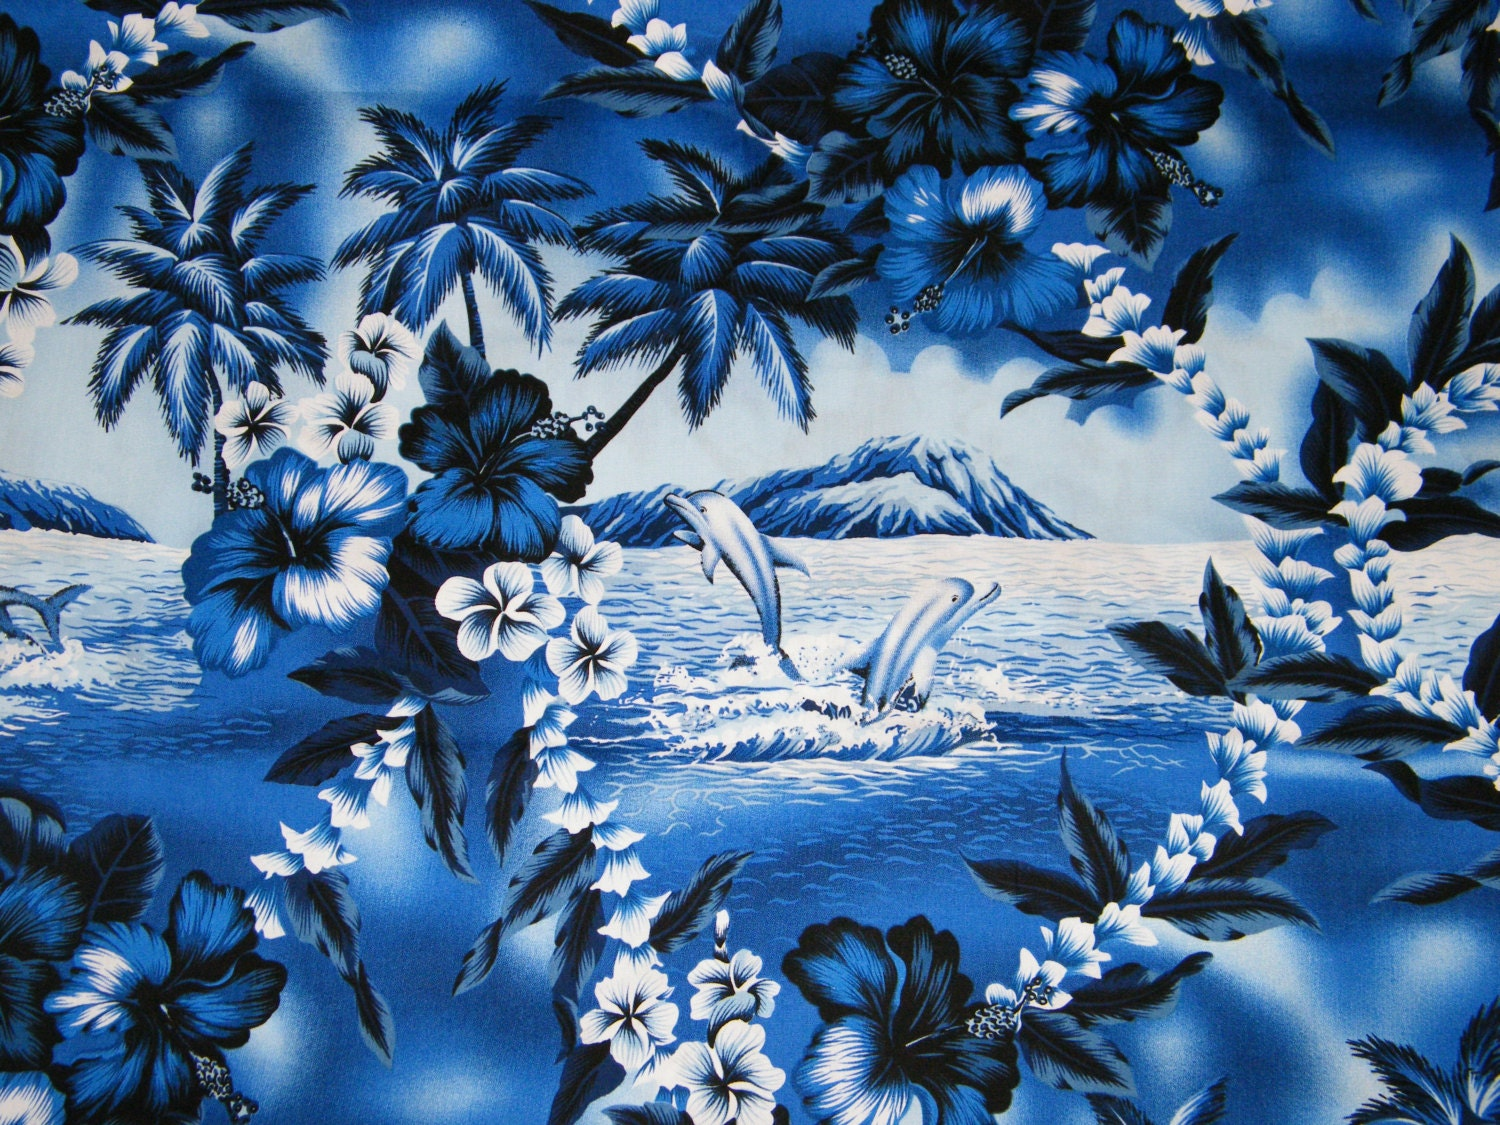 Bty Tropical Blue White Palm Trees Amp Dolphin Scenic Print